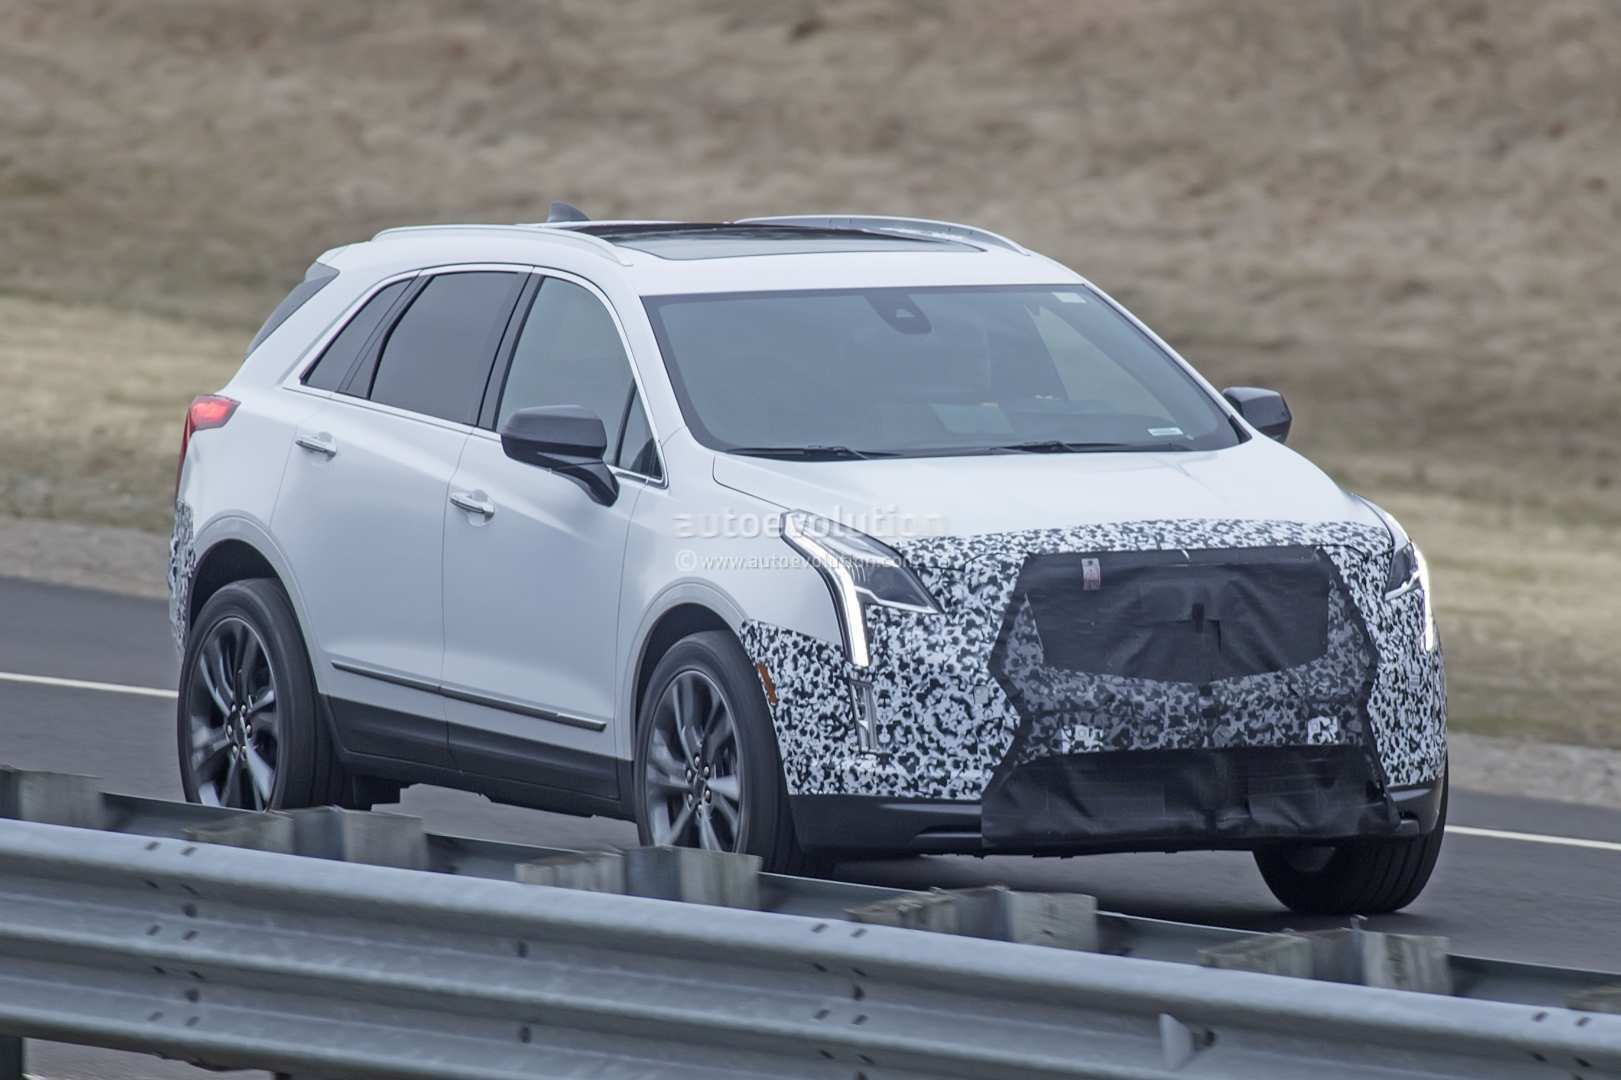 98 The Best 2019 Spy Shots Cadillac Xt5 Rumors